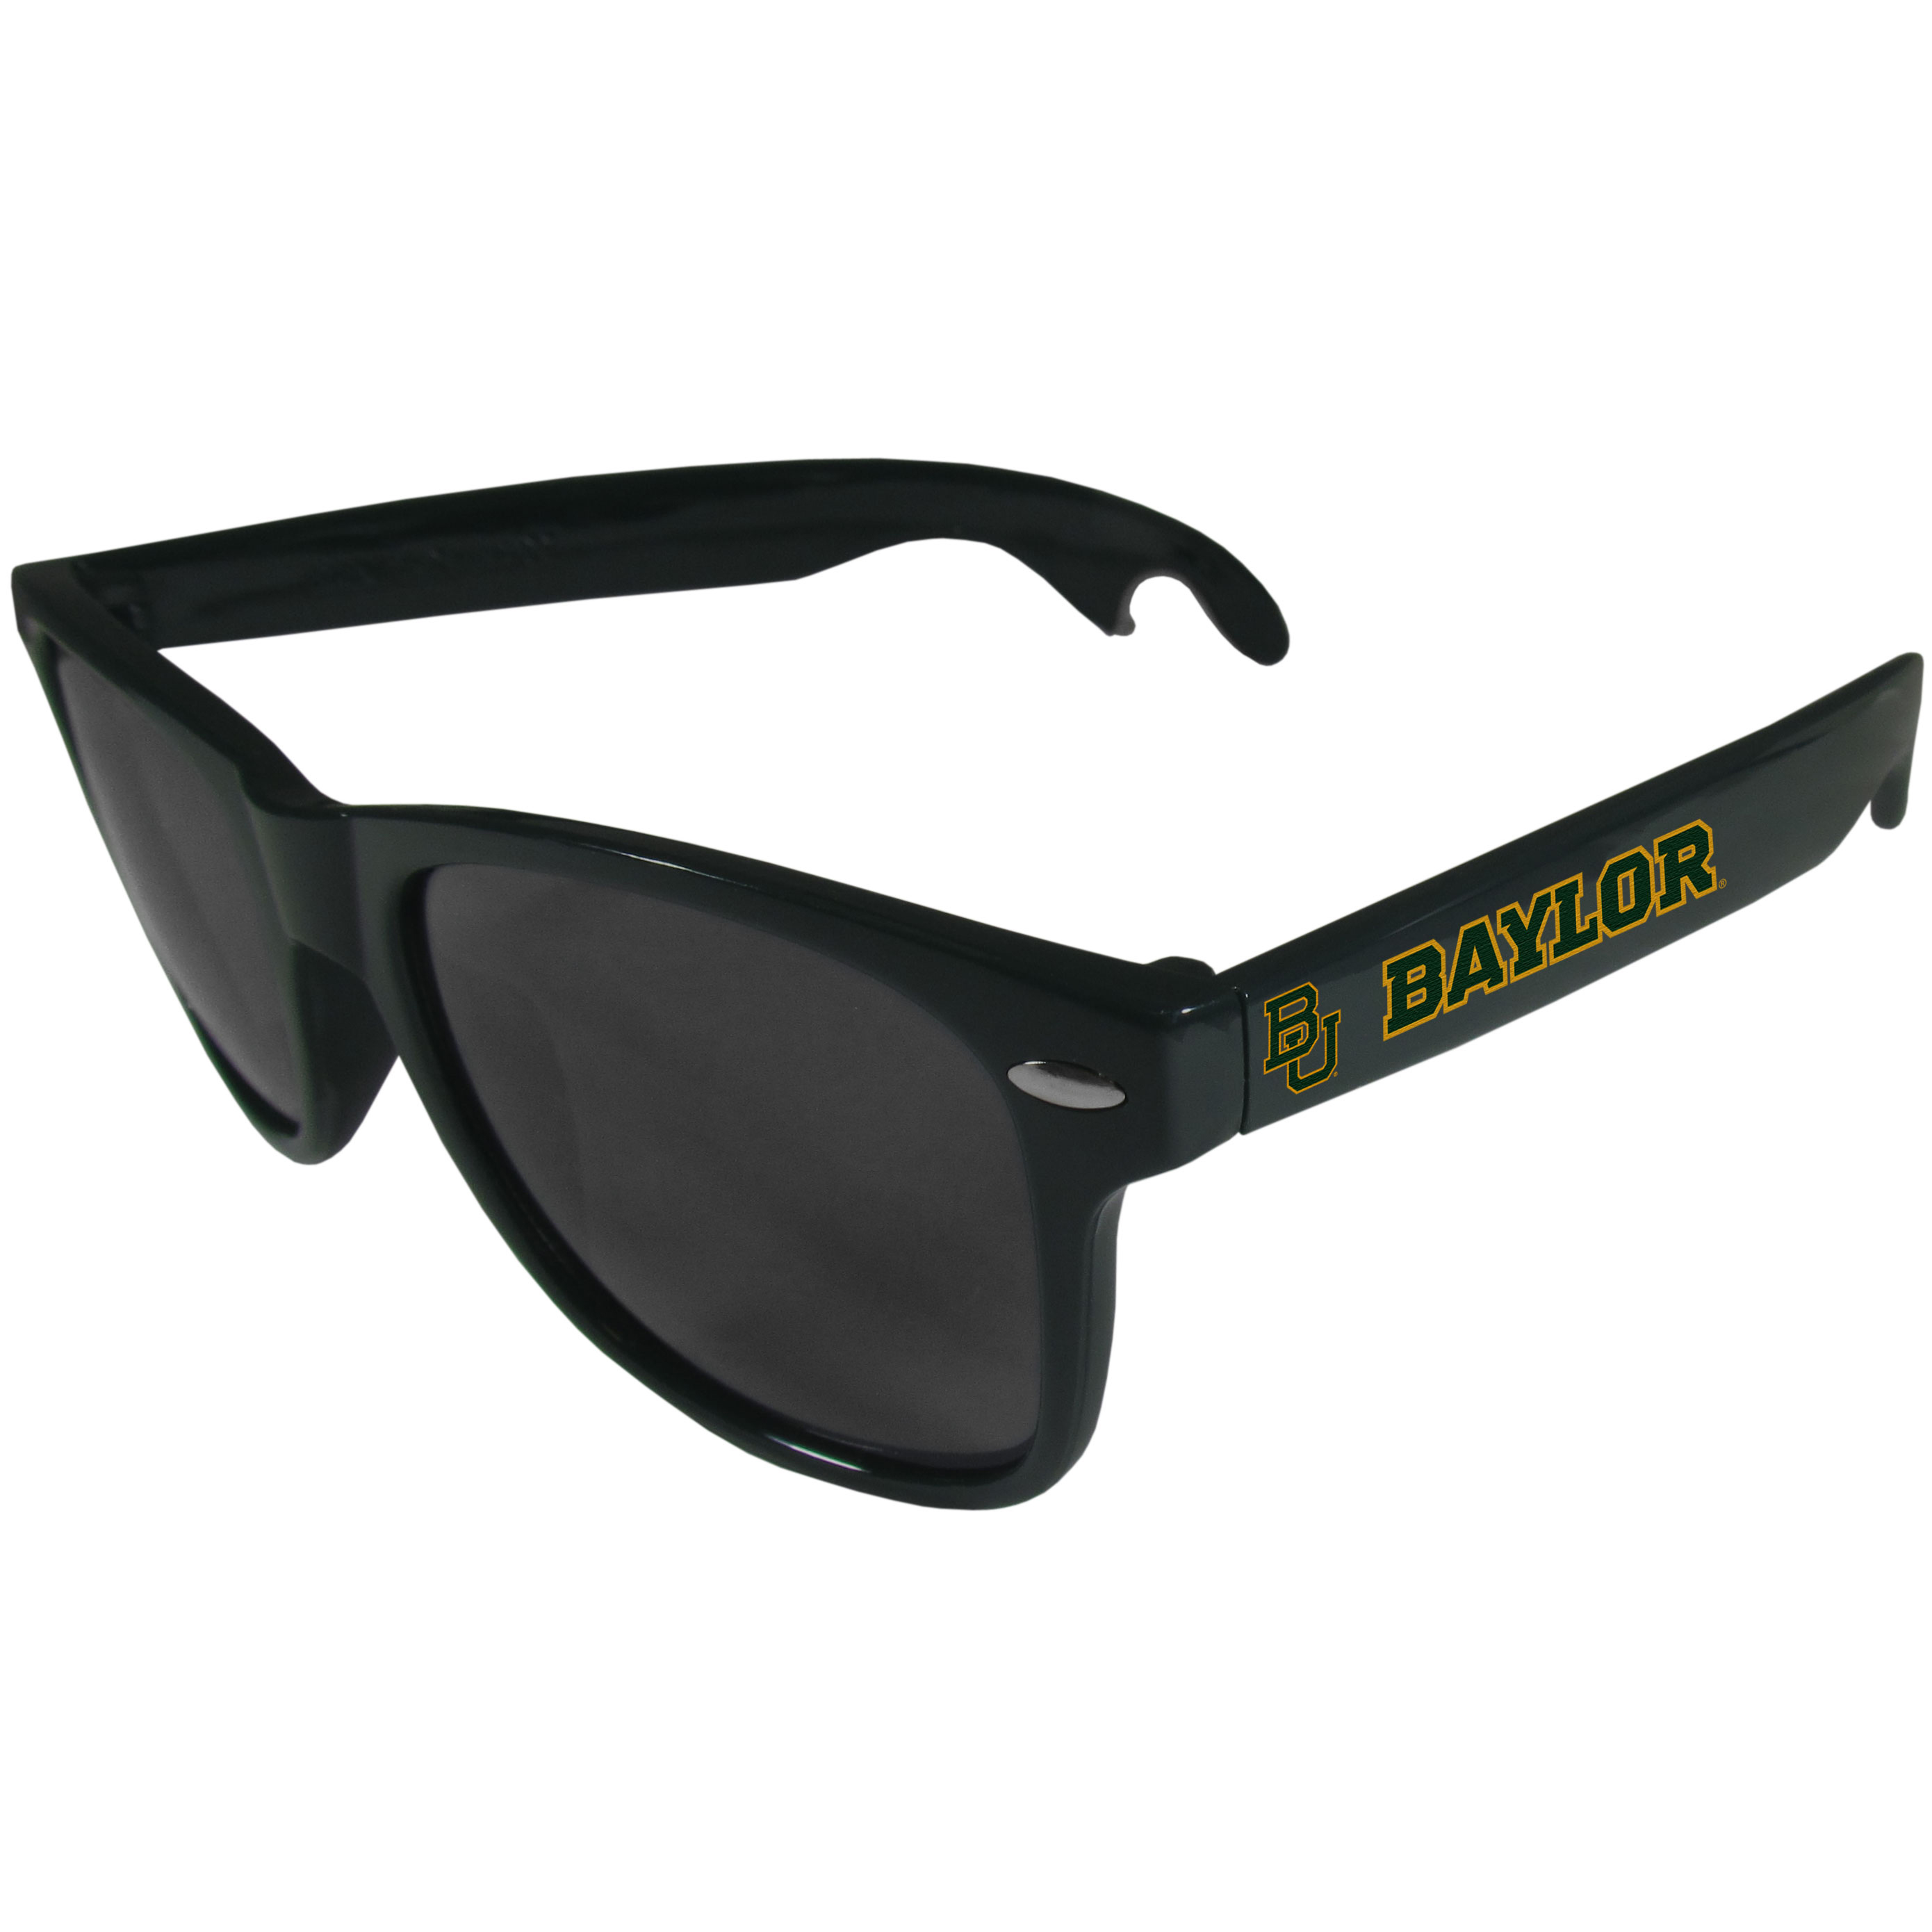 Baylor Bears Beachfarer Bottle Opener Sunglasses, Dark Green - Seriously, these sunglasses open bottles! Keep the party going with these amazing Baylor Bears bottle opener sunglasses. The stylish retro frames feature team designs on the arms and functional bottle openers on the end of the arms. Whether you are at the beach or having a backyard BBQ on game day, these shades will keep your eyes protected with 100% UVA/UVB protection and keep you hydrated with the handy bottle opener arms.